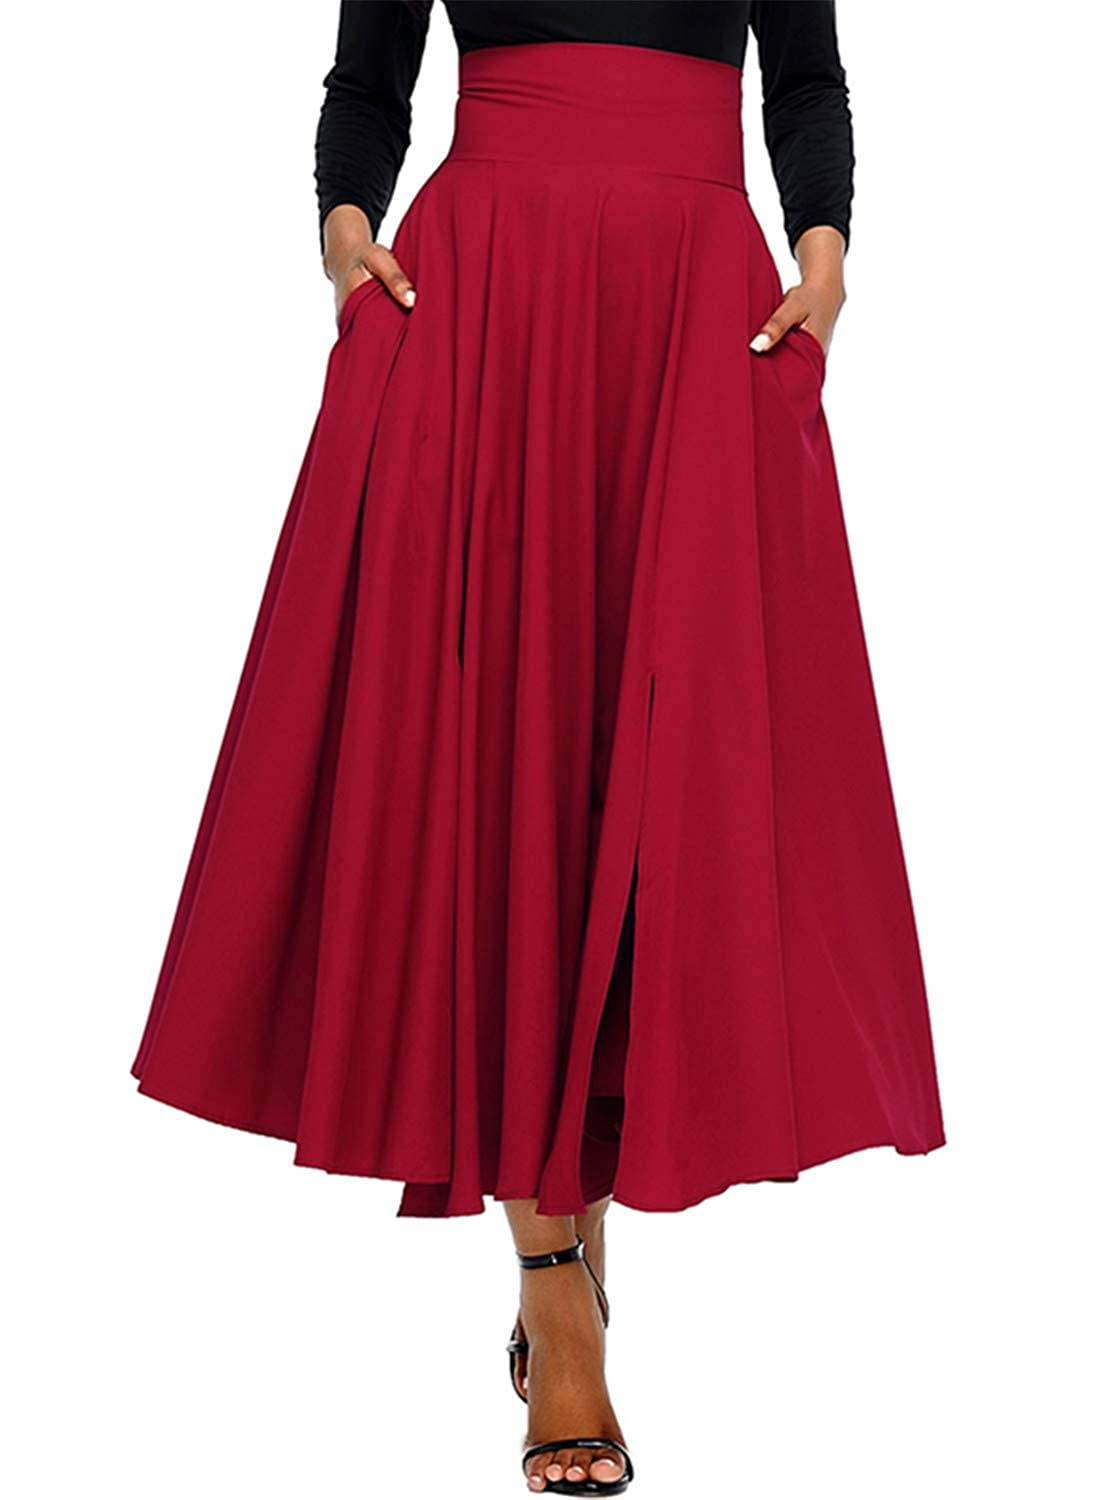 FIYOTE Womens High Waist Front Slit Belted Casual A Line Pleated Long Maxi Skirt S-XXL